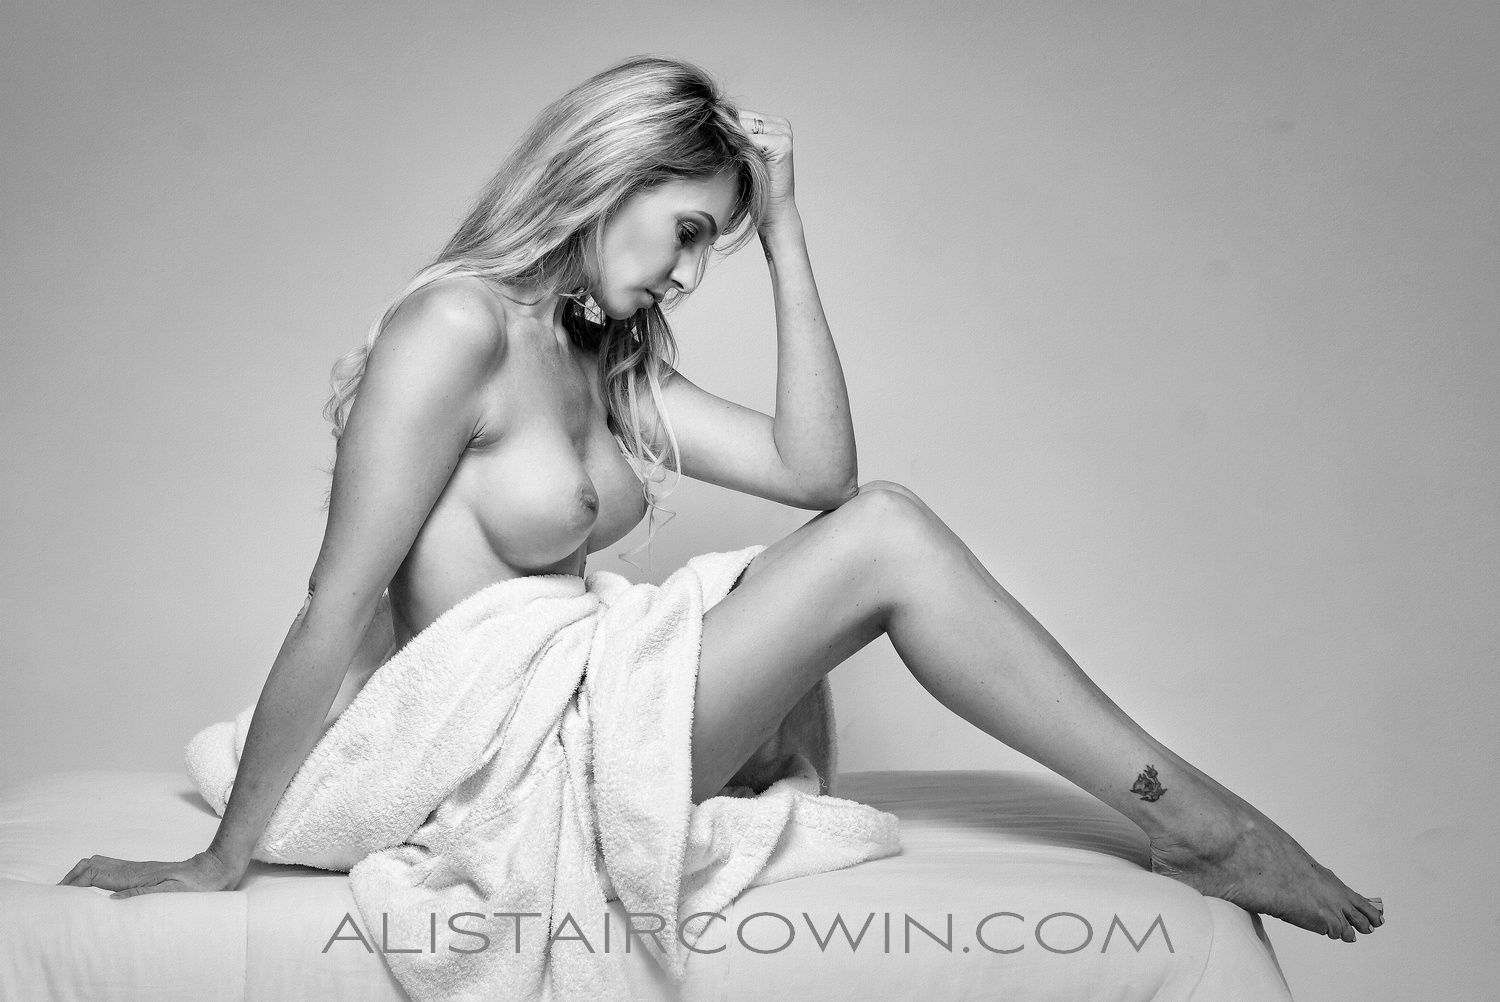 Photographed for Alistair Cowin's Beauty Book and the model's Portfolio<br /> Model: Angel Price